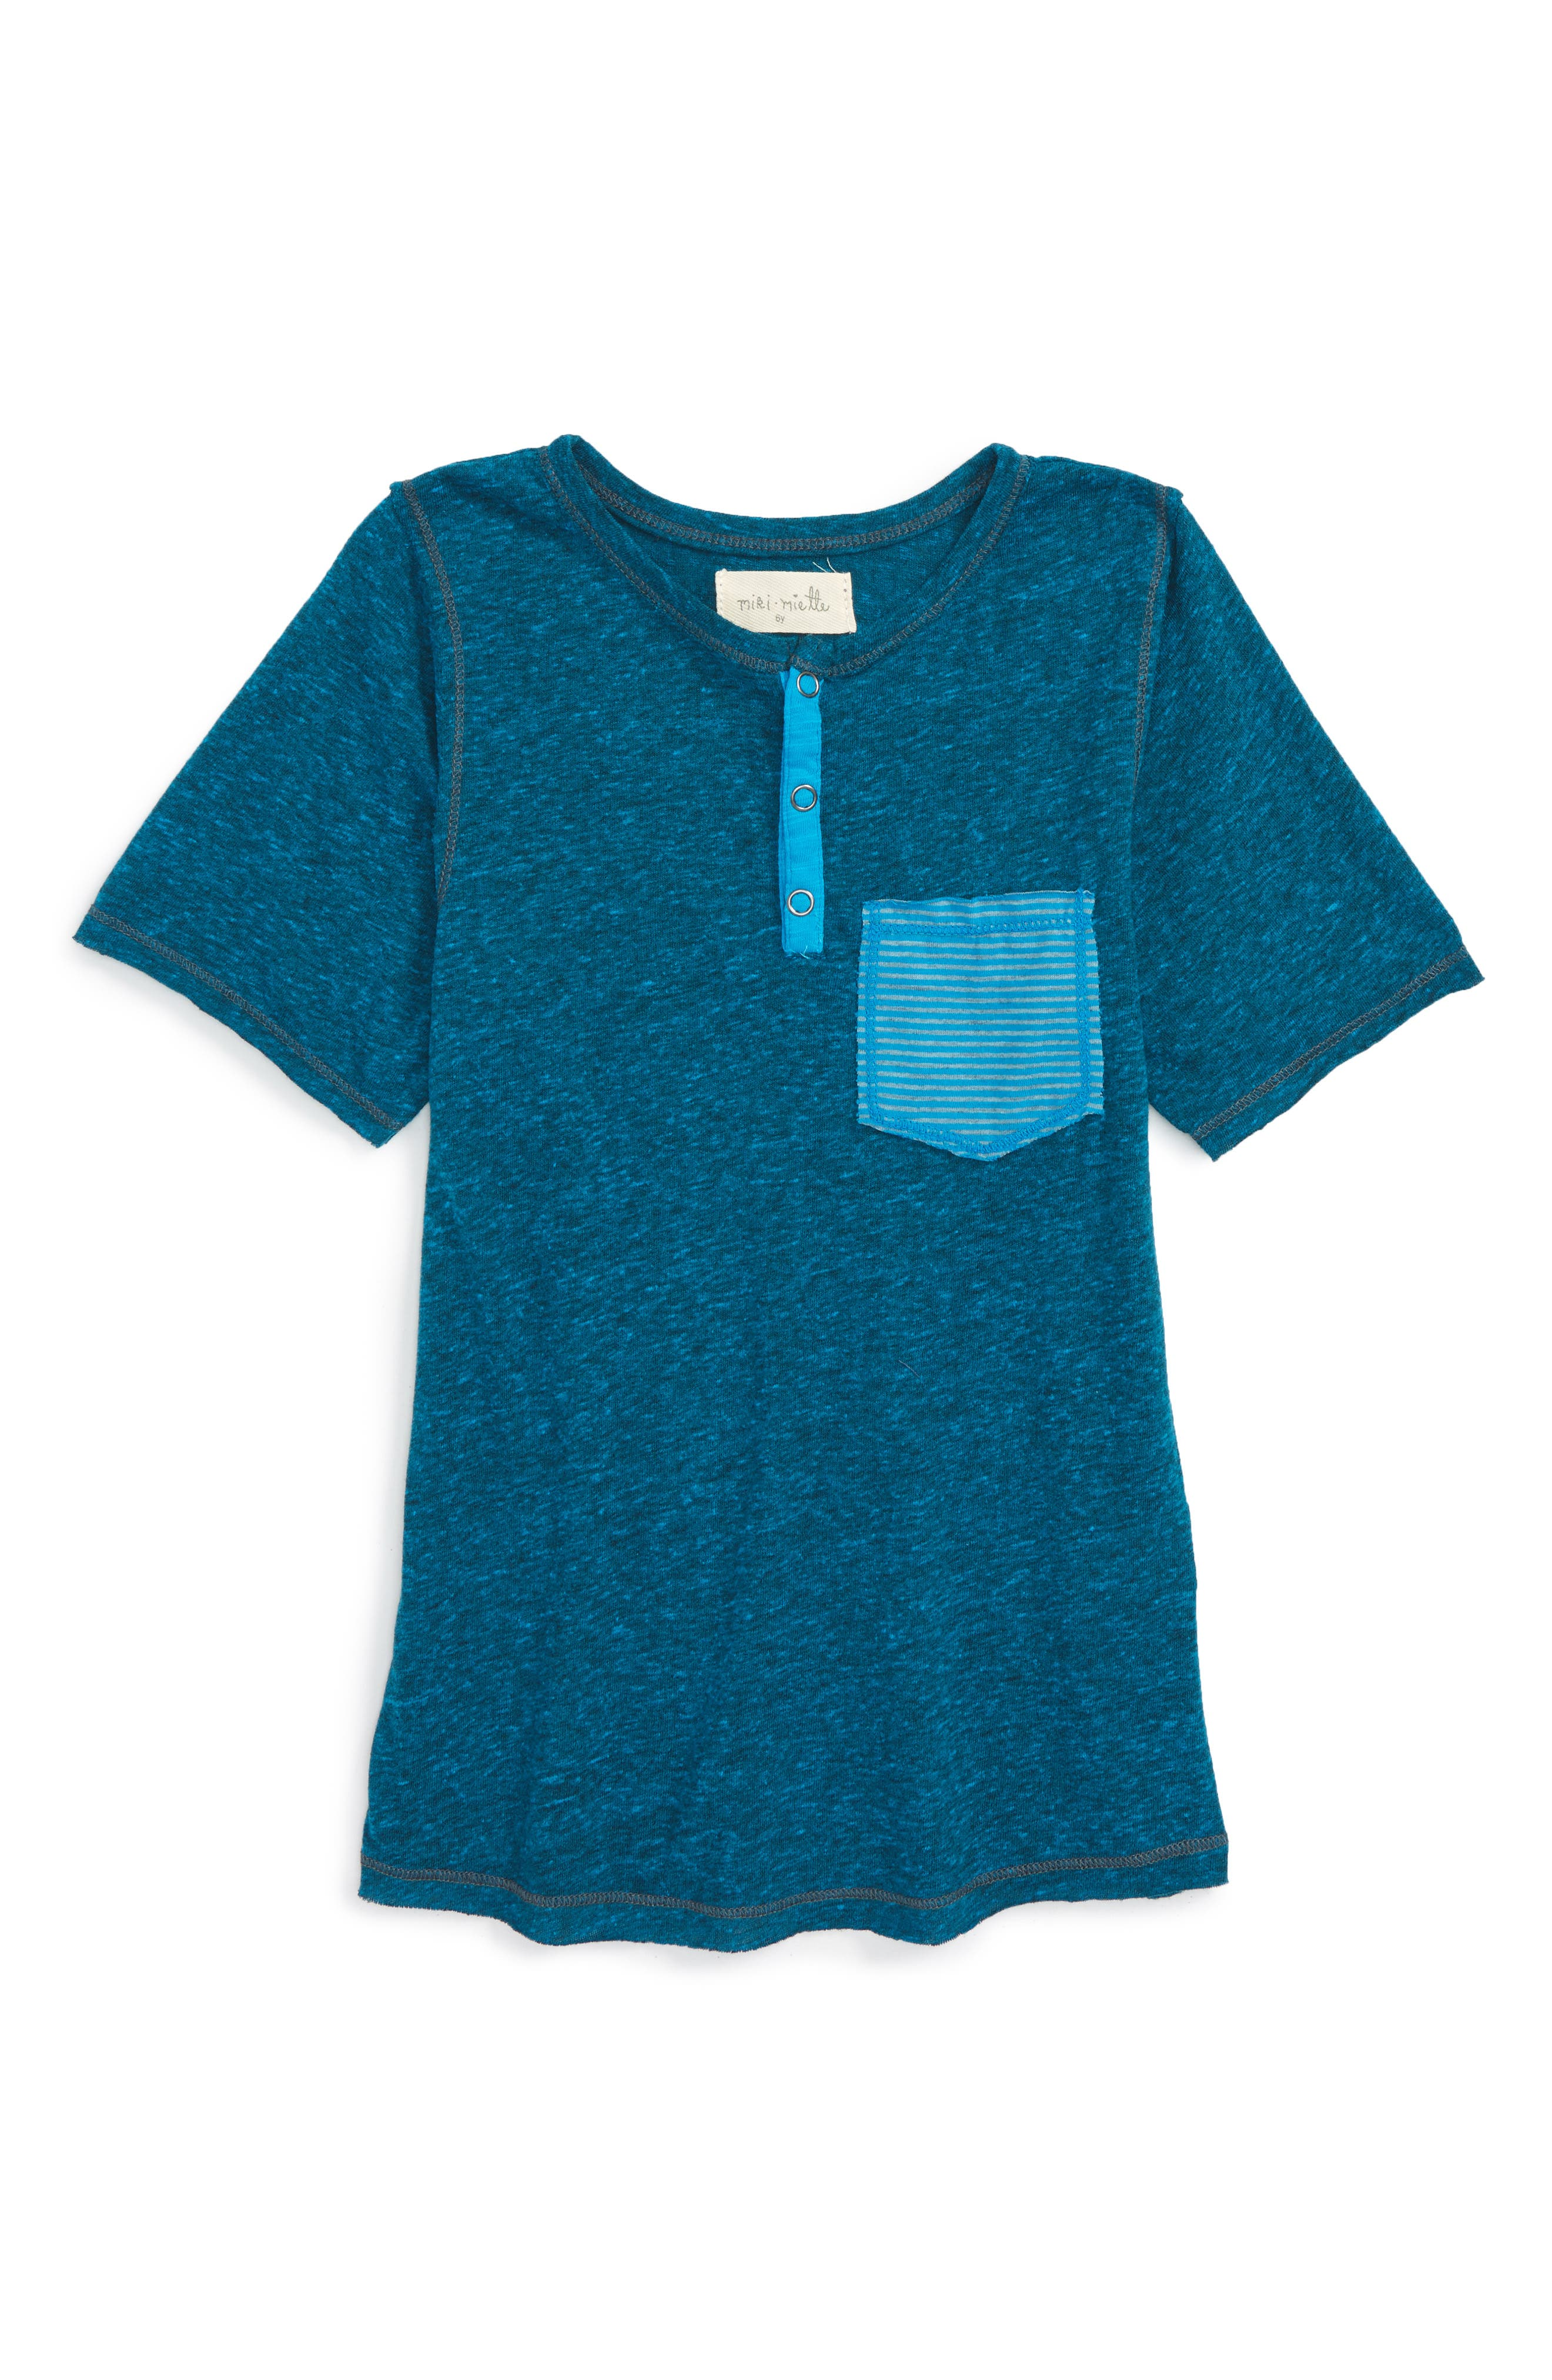 Jax Pocket T-Shirt,                             Main thumbnail 4, color,